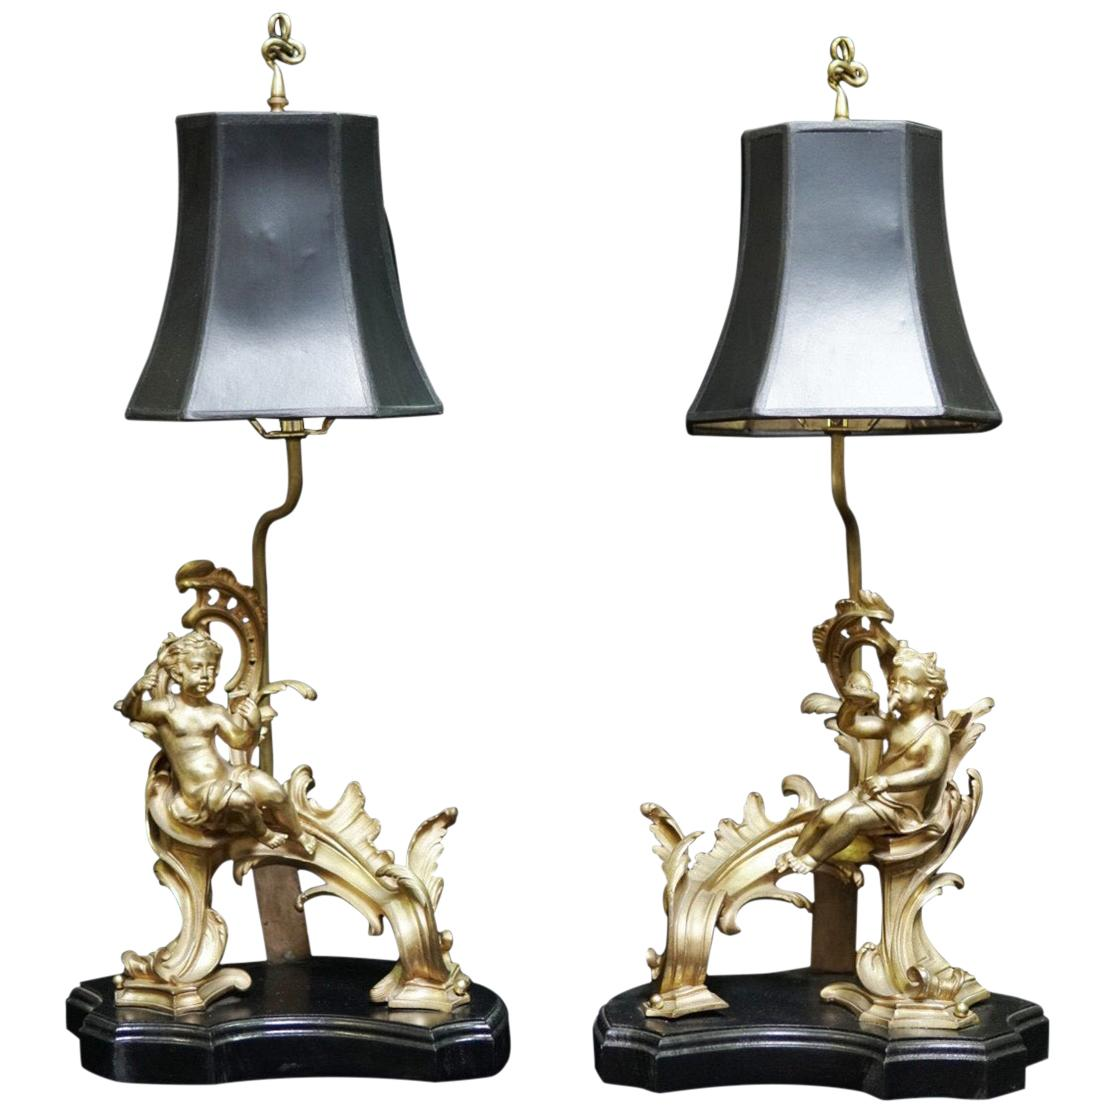 Pair of French Ormolu Chenet Mounted Lamps, 19th Century